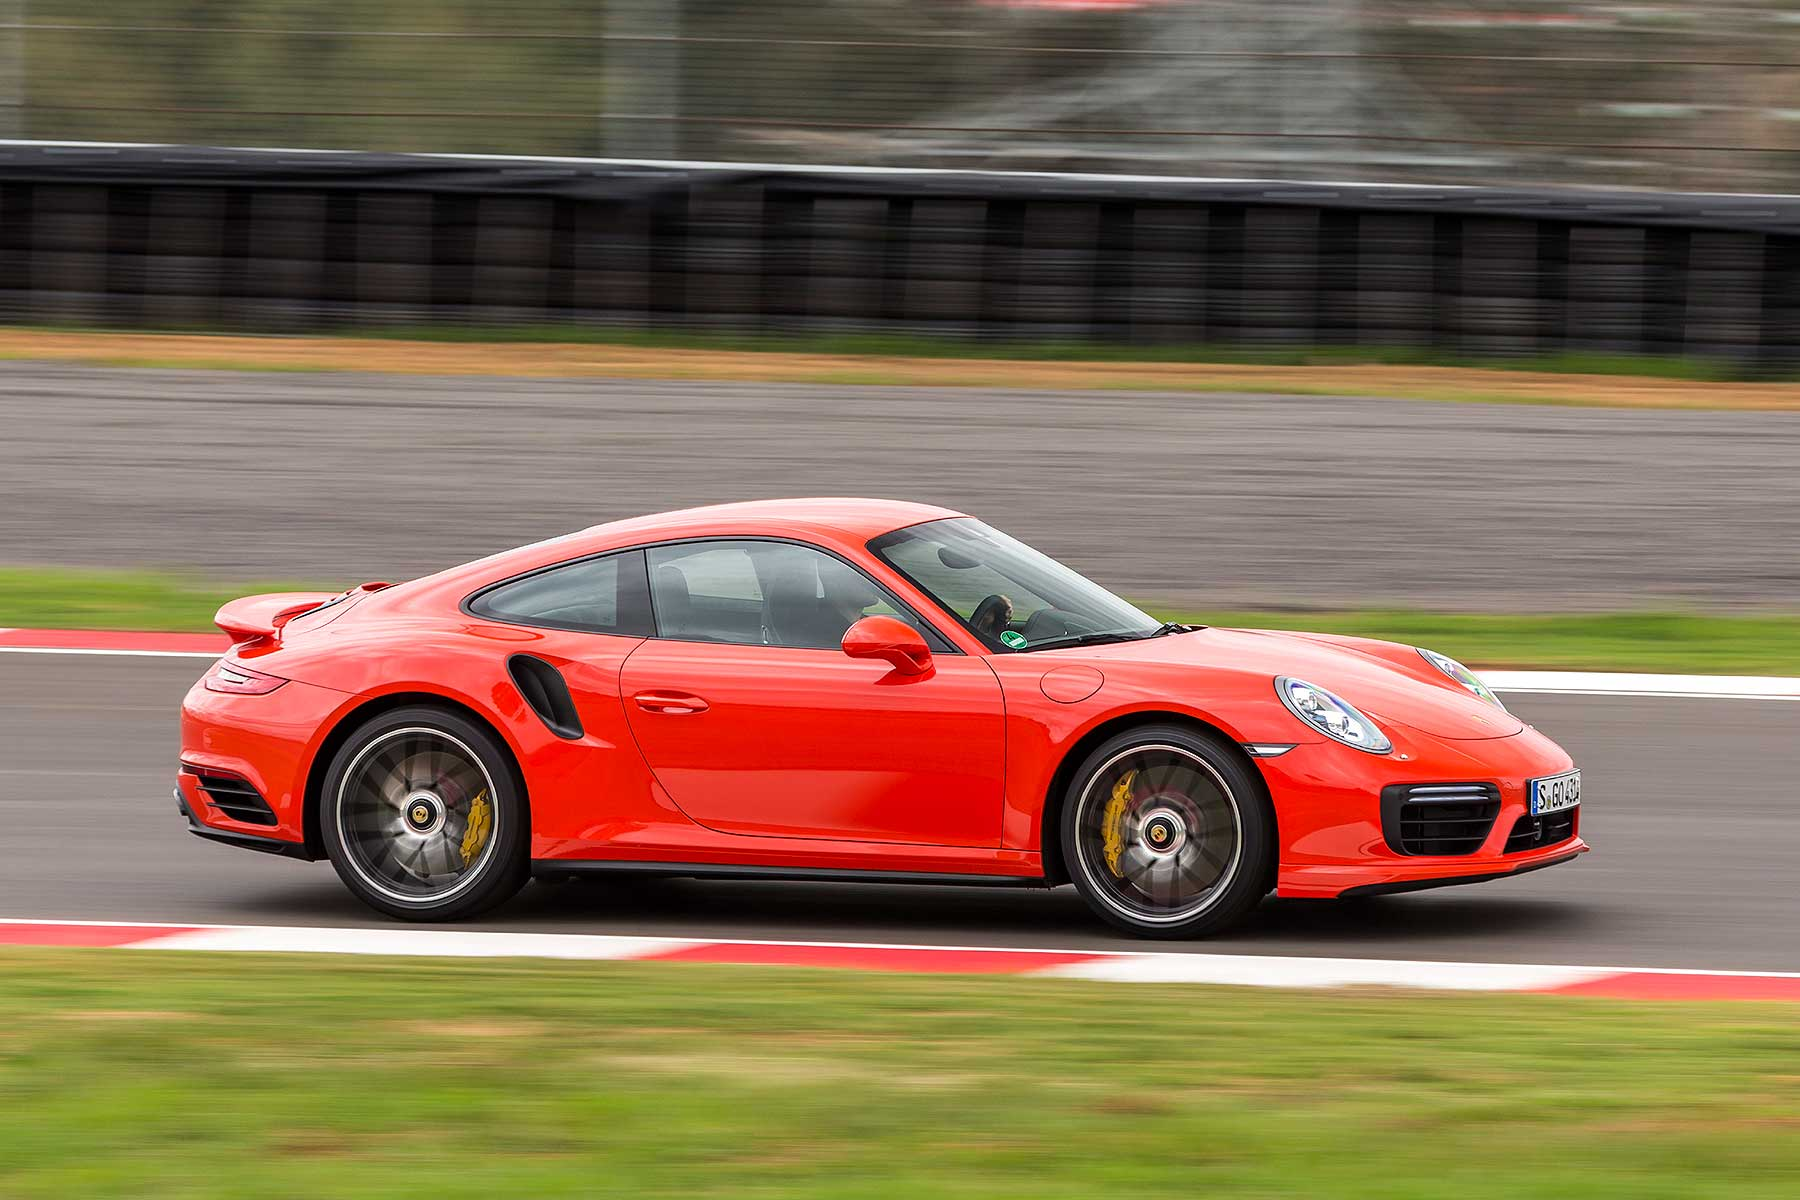 2016 porsche 911 turbo s review first drive motoring. Black Bedroom Furniture Sets. Home Design Ideas